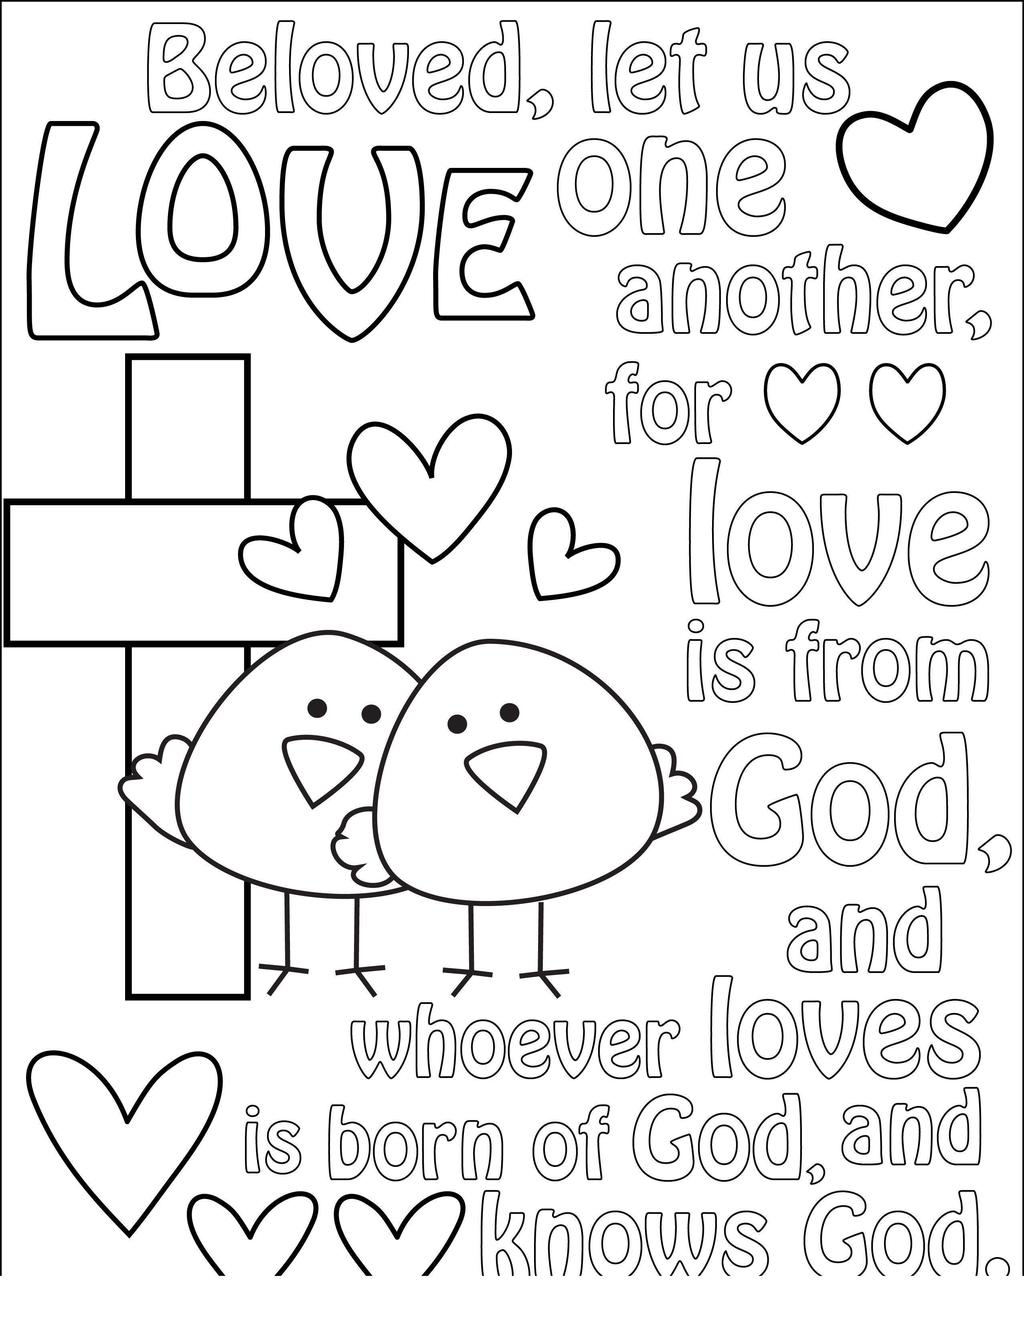 Jesus Loves Me Coloring Pages Sheet Online Free Printable Coloring